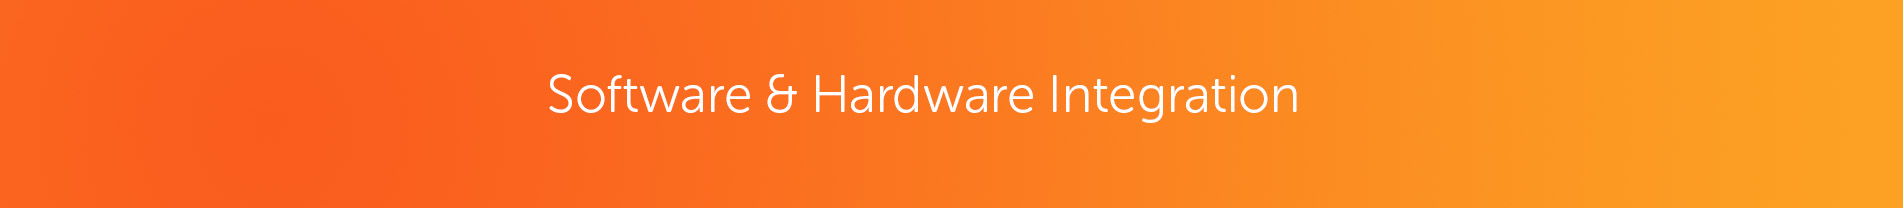 Software and hardware integration service